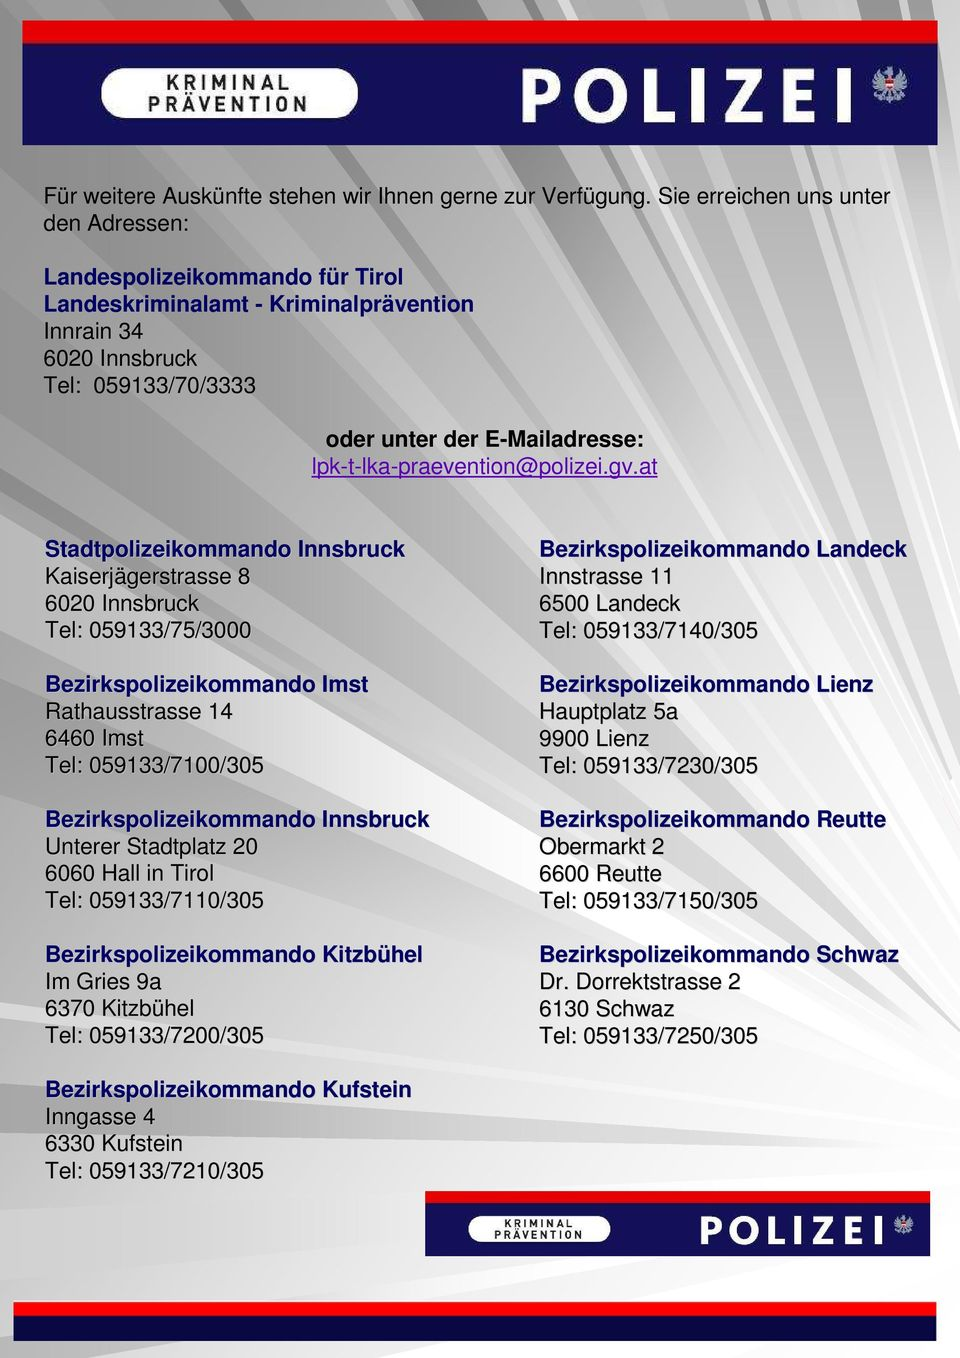 lpk-t-lka-praevention@polizei.gv.